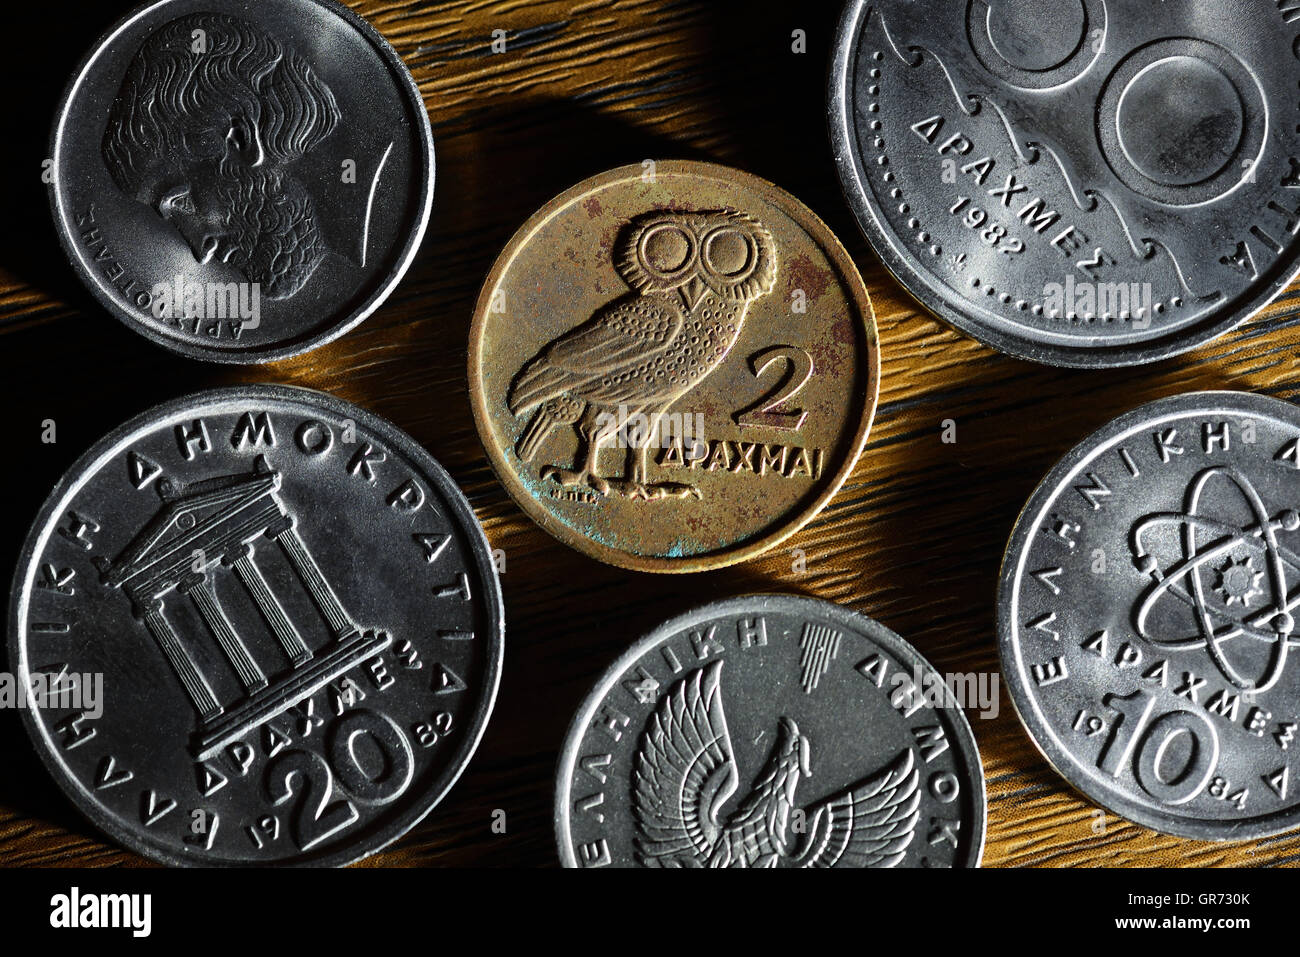 Greek Drachma Coins - Stock Image